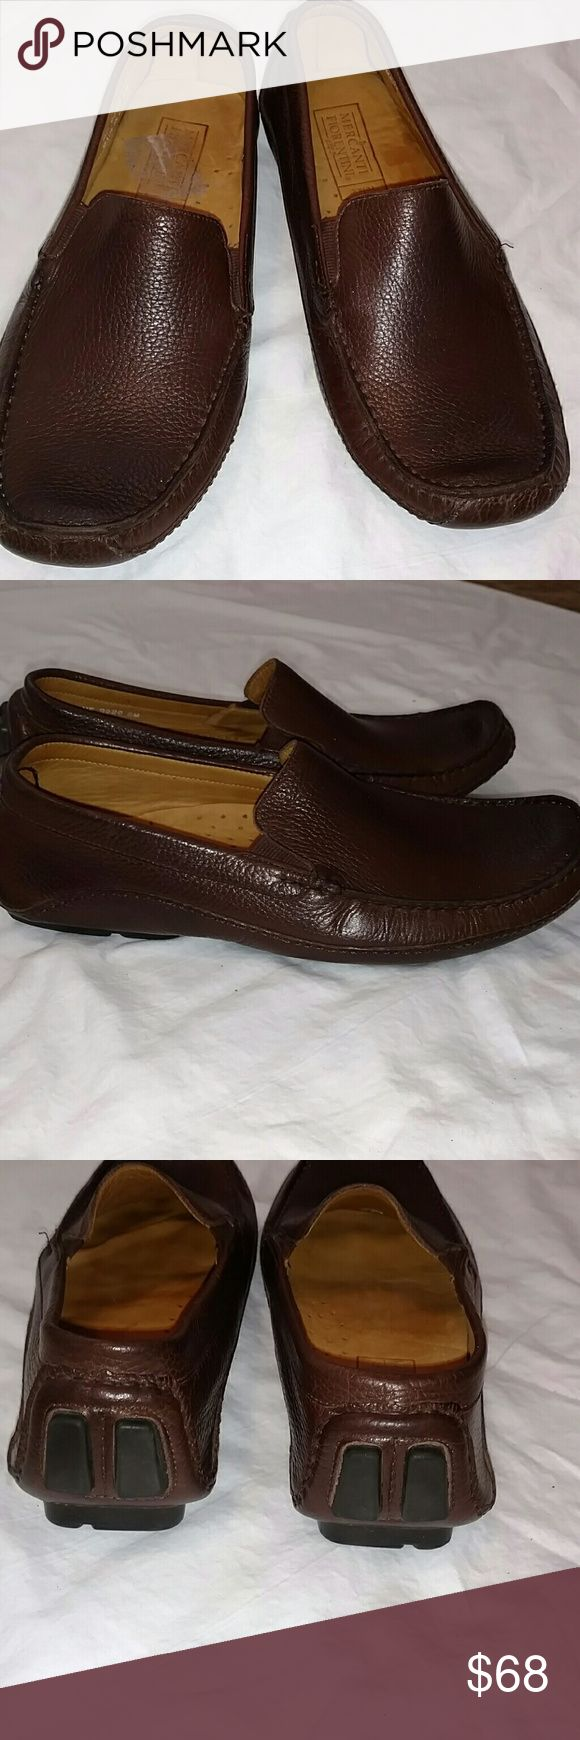 "Mercanti Fiorentini brown driving loafers These dark brown leather loafers are by Mercanti Fiorentini with a ""relax"" insole.  Excellent pre-loved condition.  Indeed, the soles look like they have never touched pavement! Shoes Loafers & Slip-Ons"